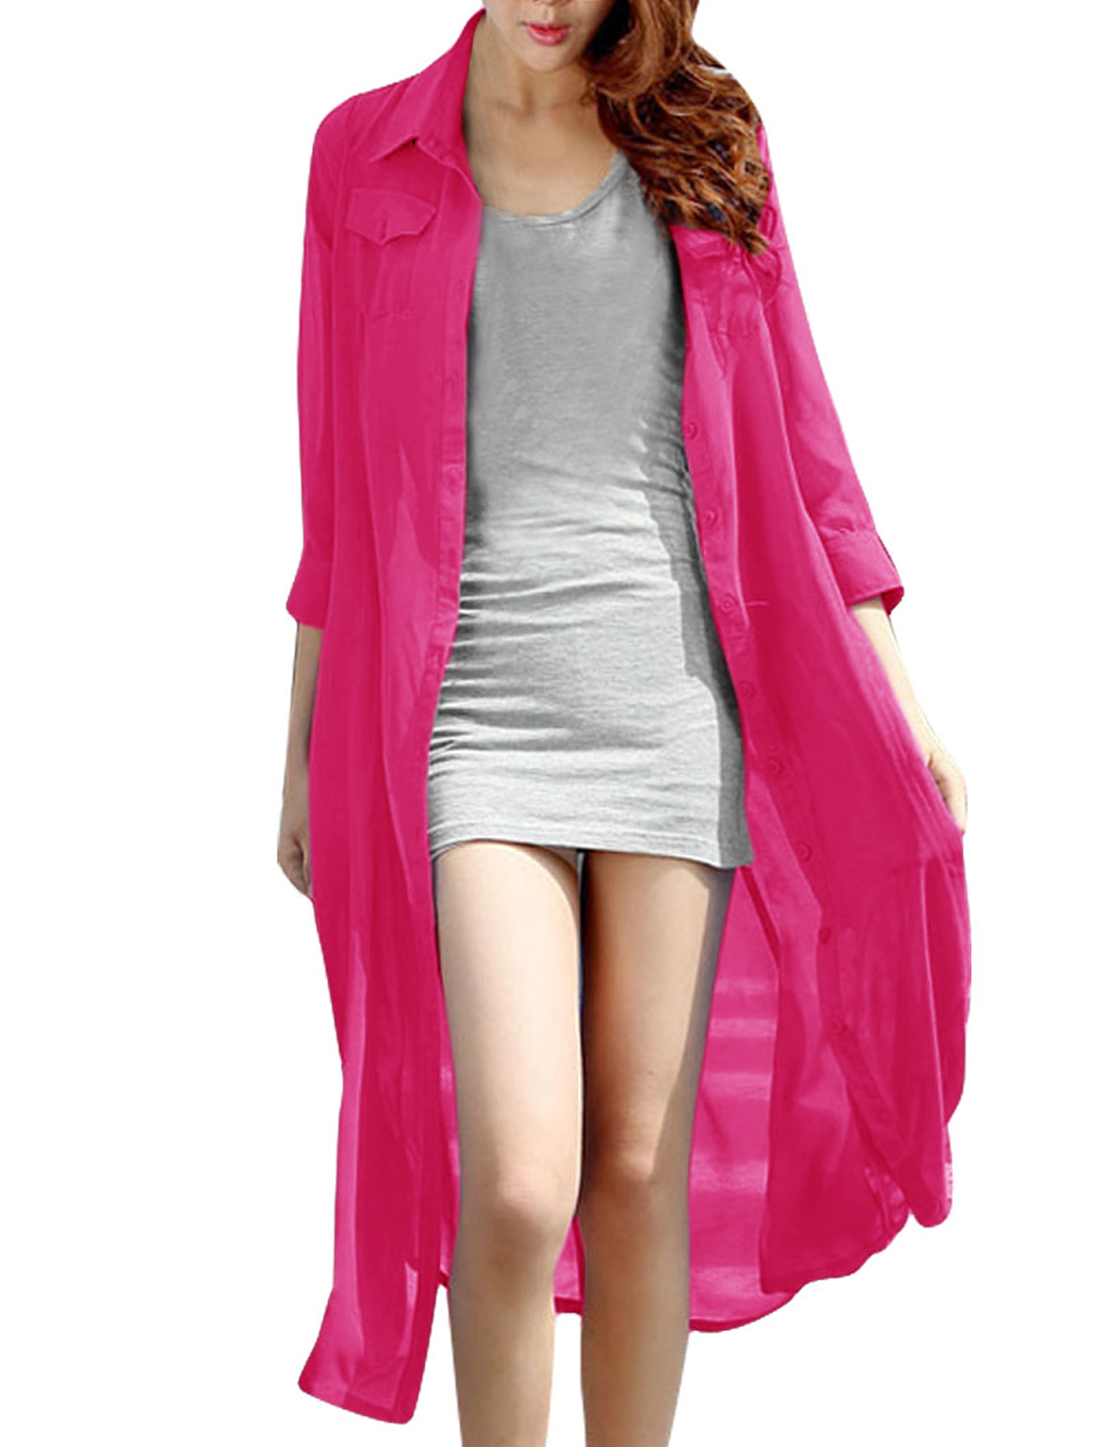 Ladies Point Collar 3/4 Sleeve Single-Breasted Front Fuchsia Shirt Dress XS